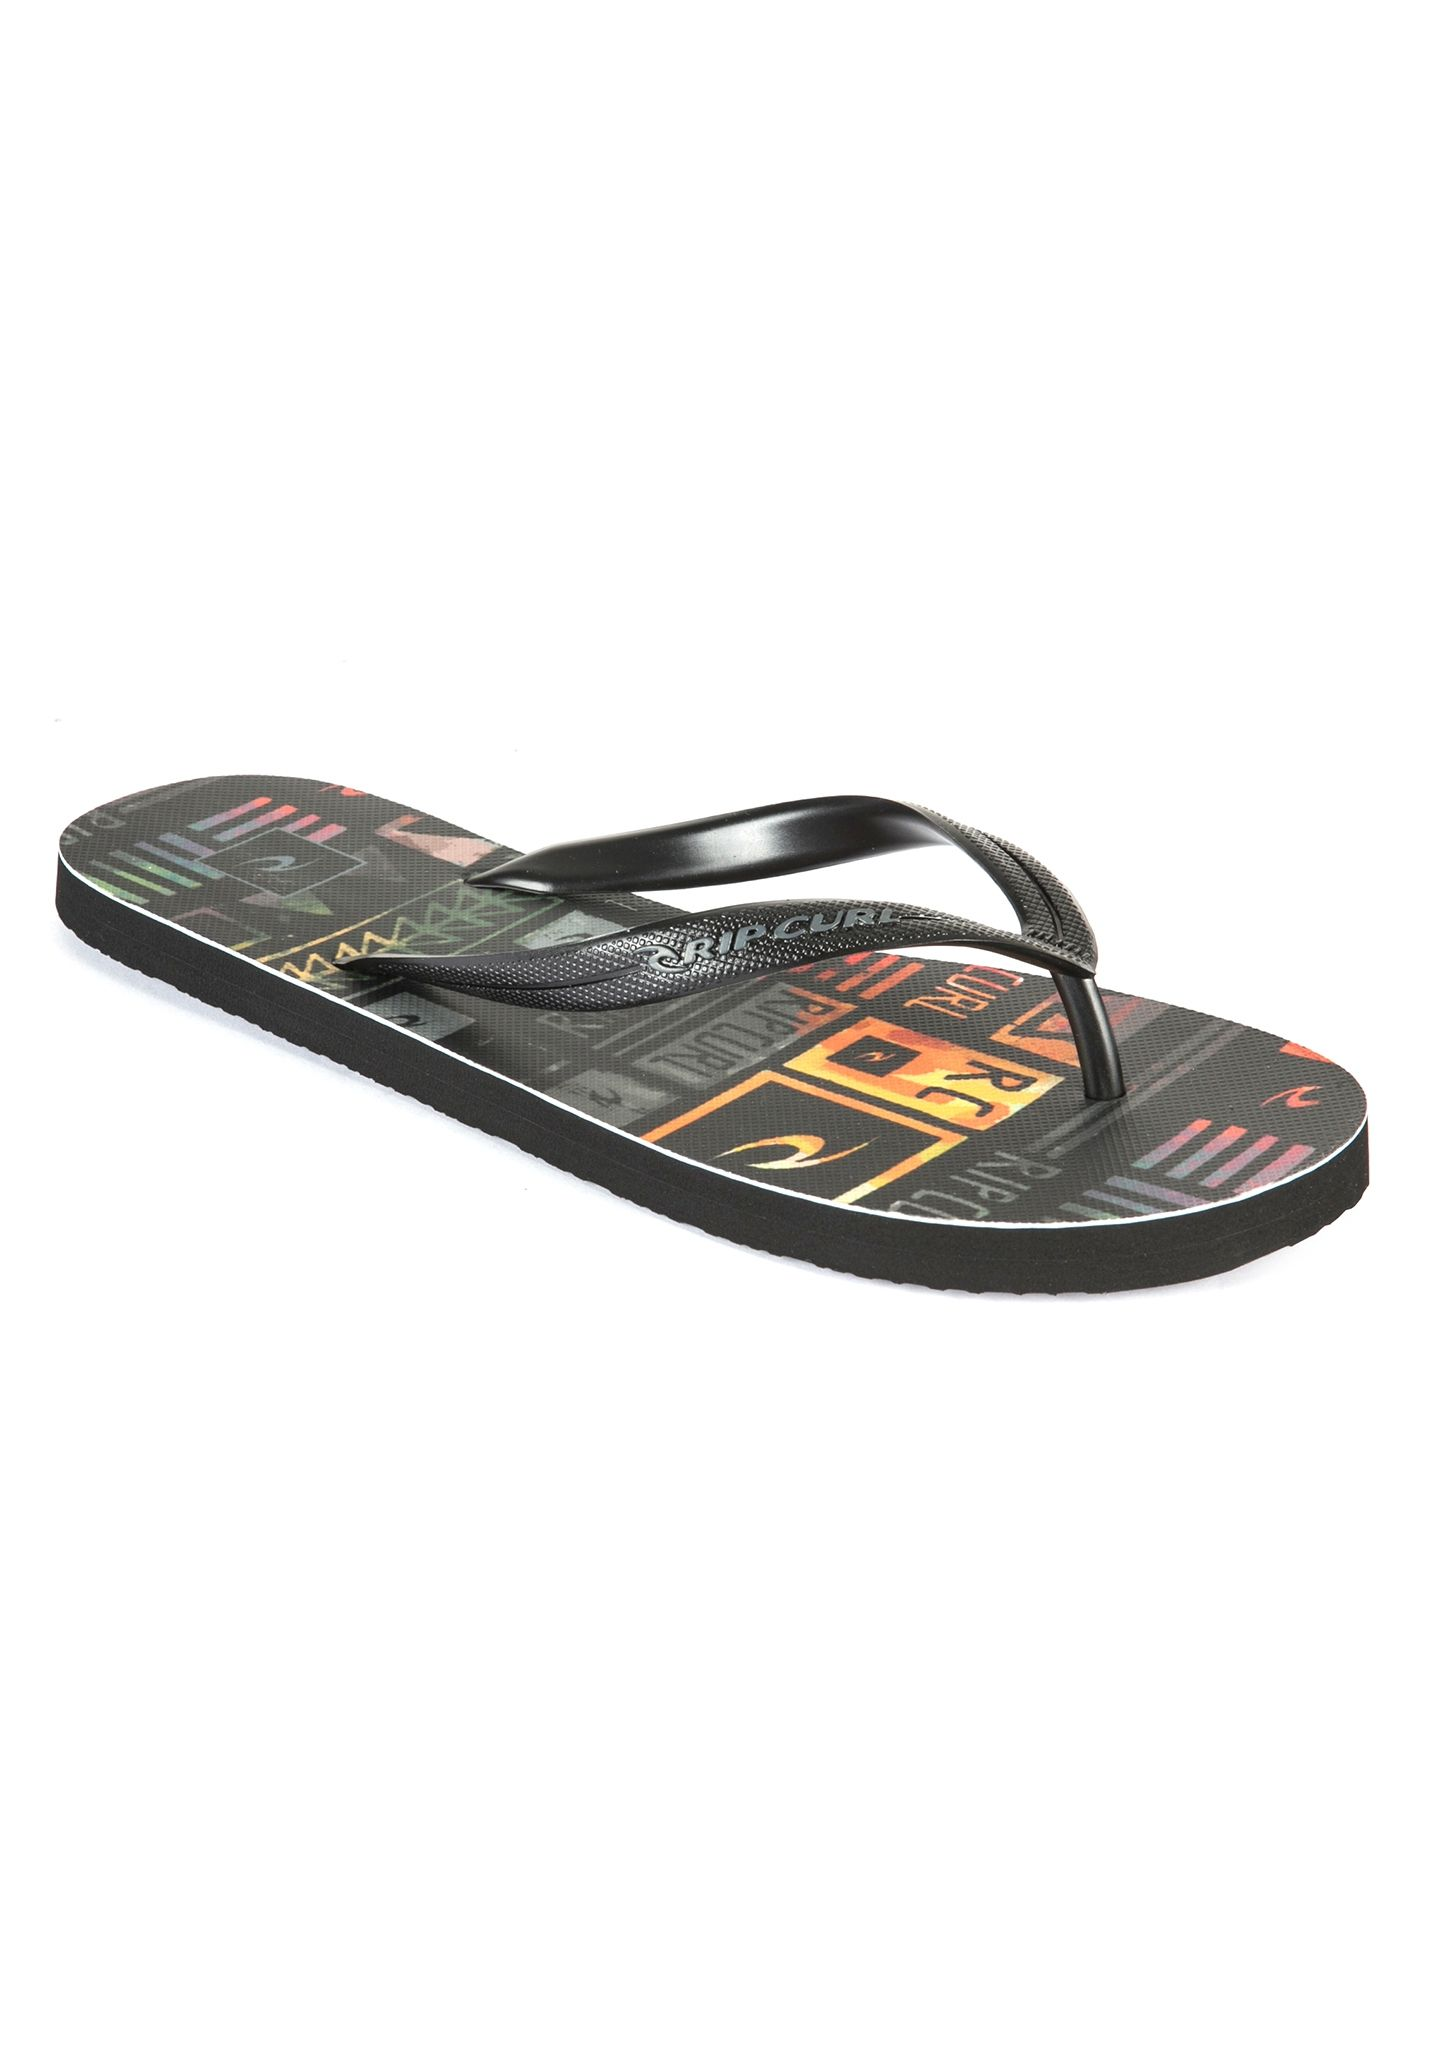 Rip Curl T2T Check- Black sandals